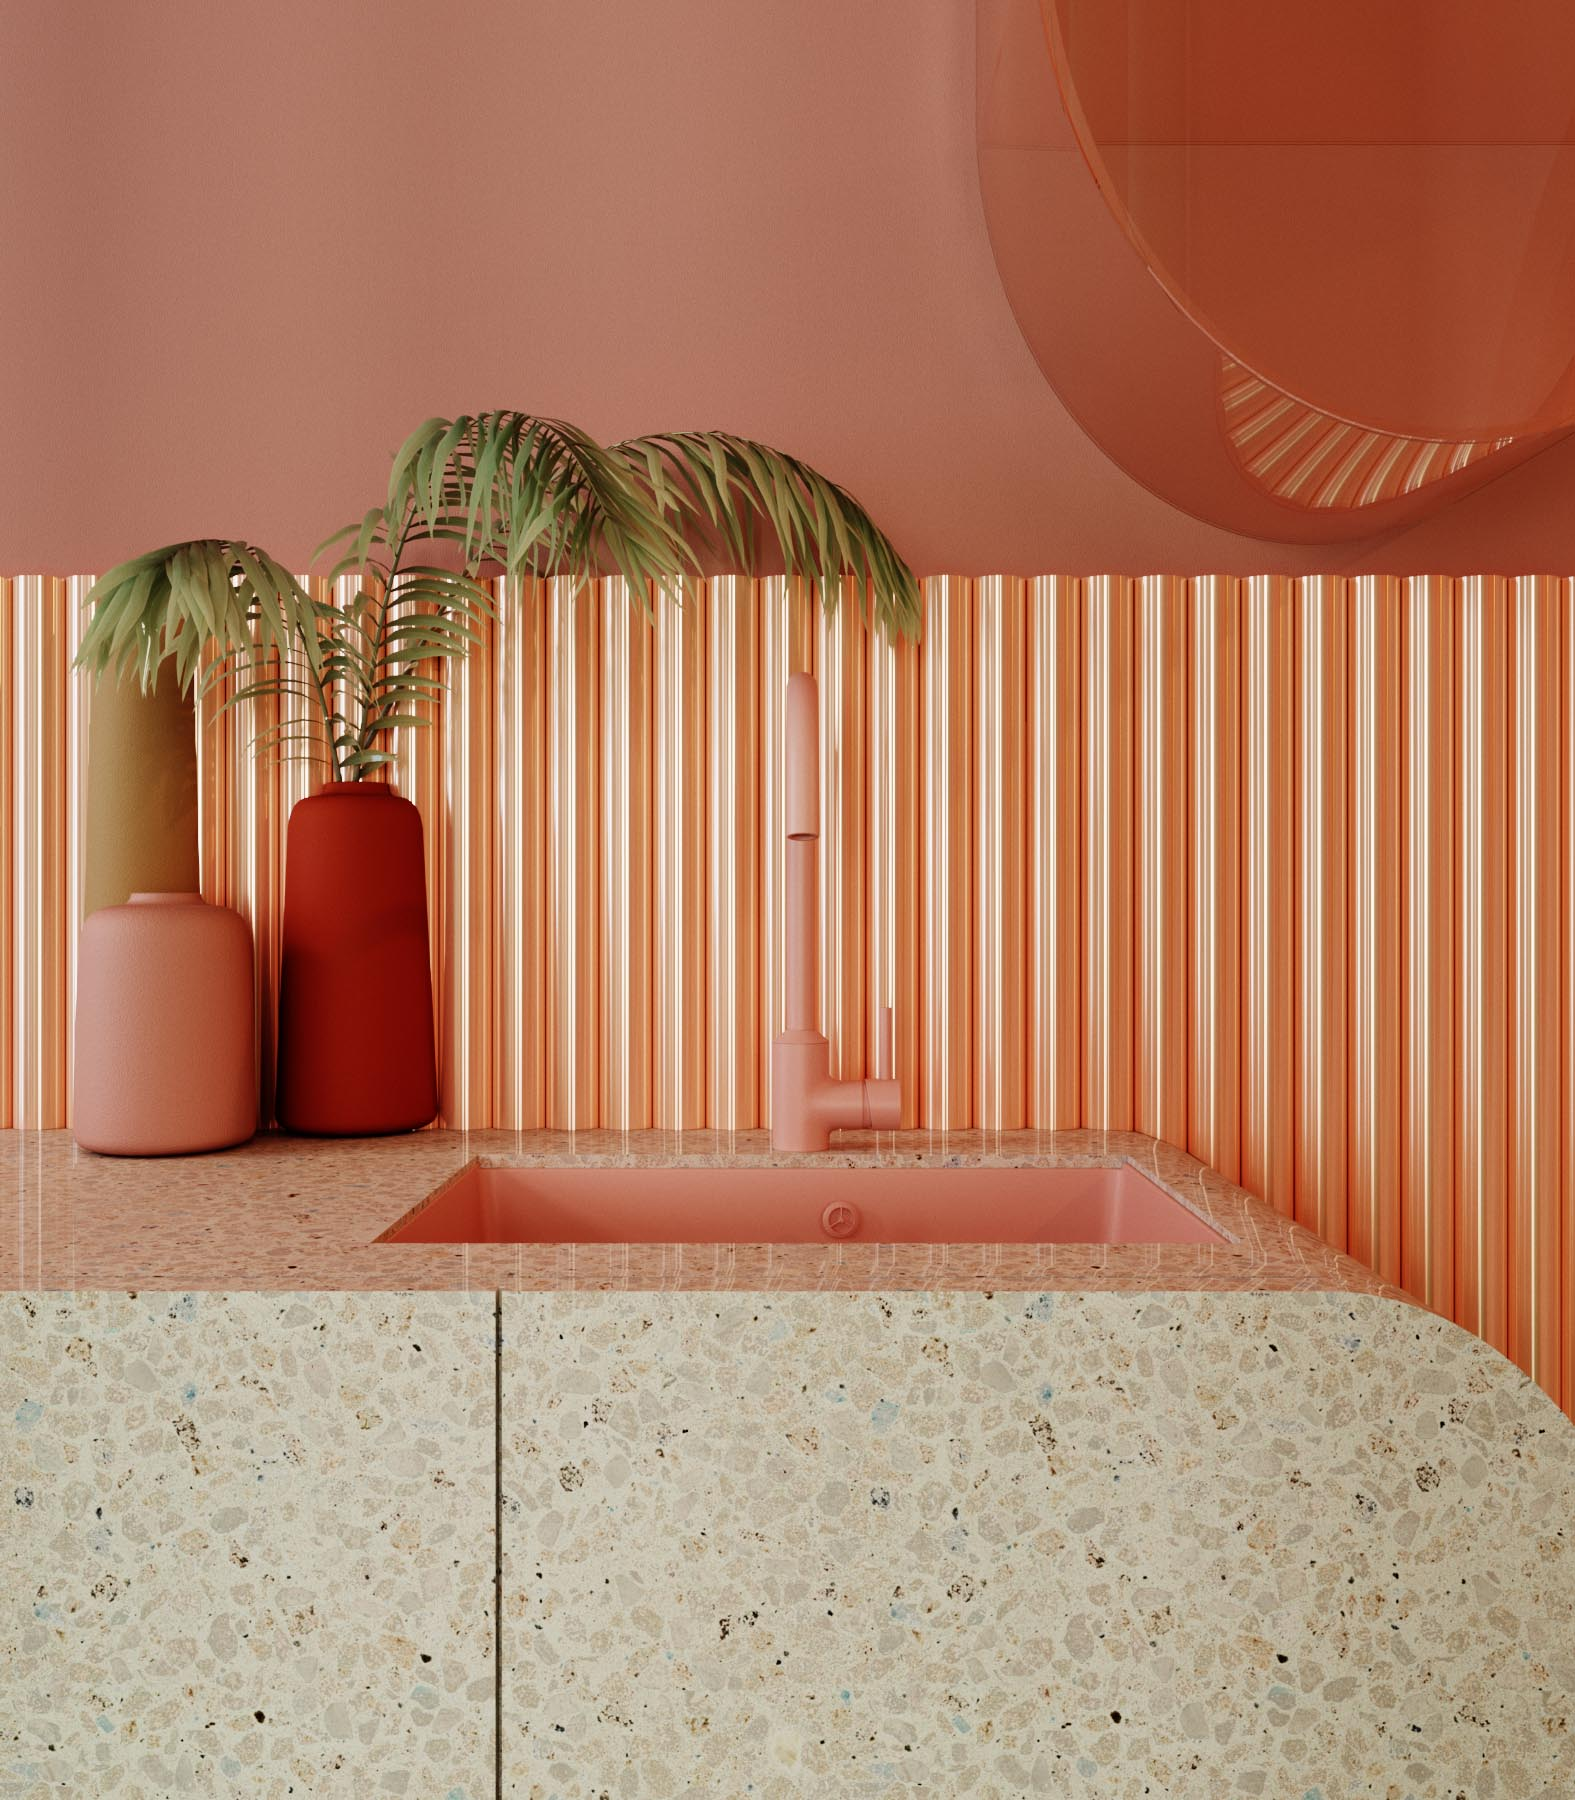 This pink and green kitchen includes materials such as terrazzo and plastic, and has floating cabinets. The metal backsplash, which is coated with copper, protects the wall and acts as a decorative function.